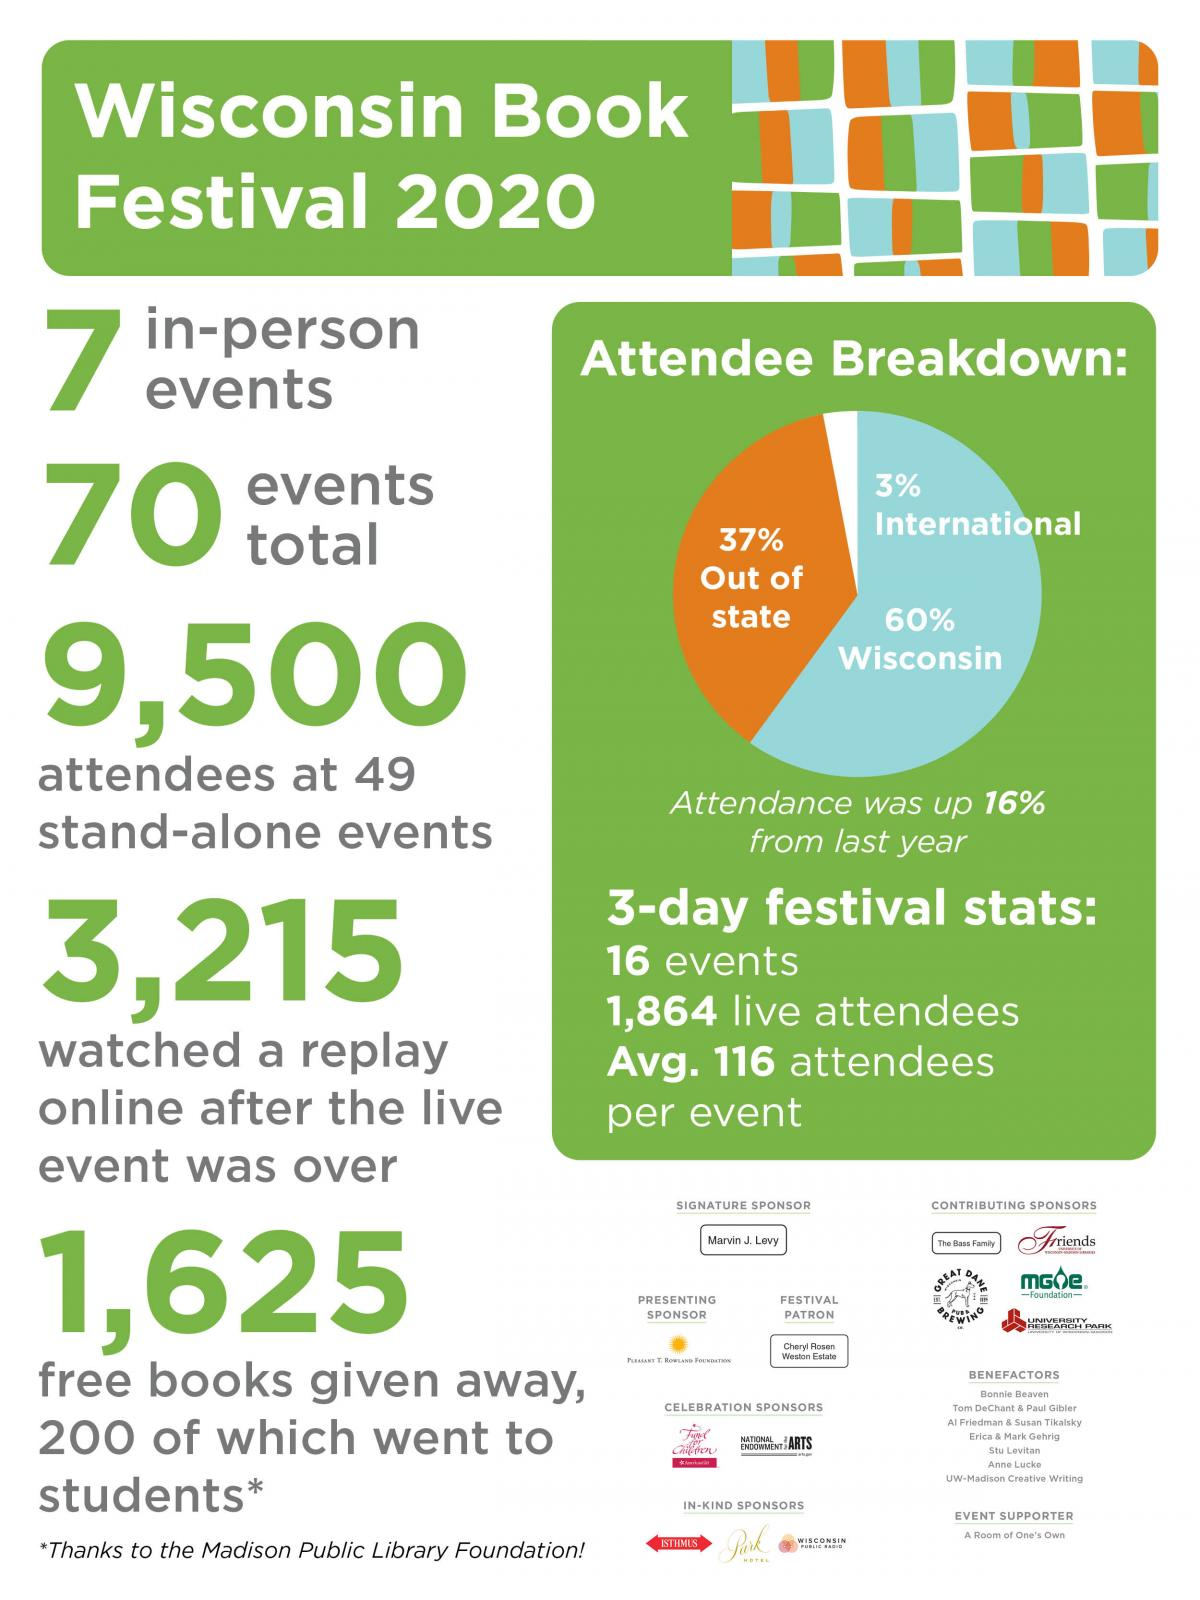 2020 Wisconsin Book Festival Statistics from Madison Public Library